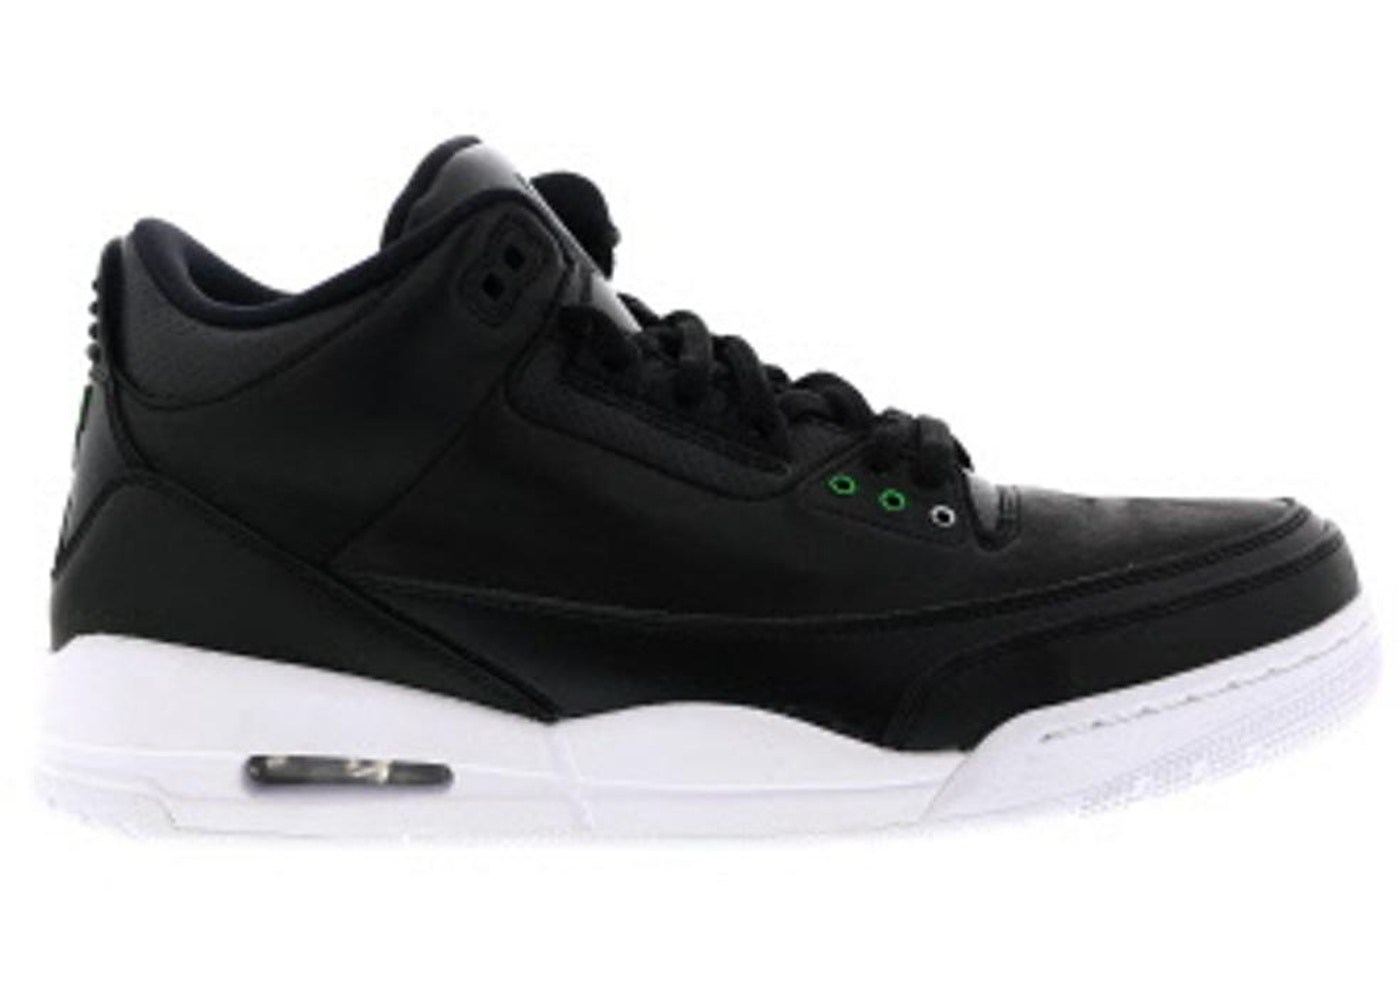 new products huge selection of 2018 shoes Jordan 3 Retro StockX Day